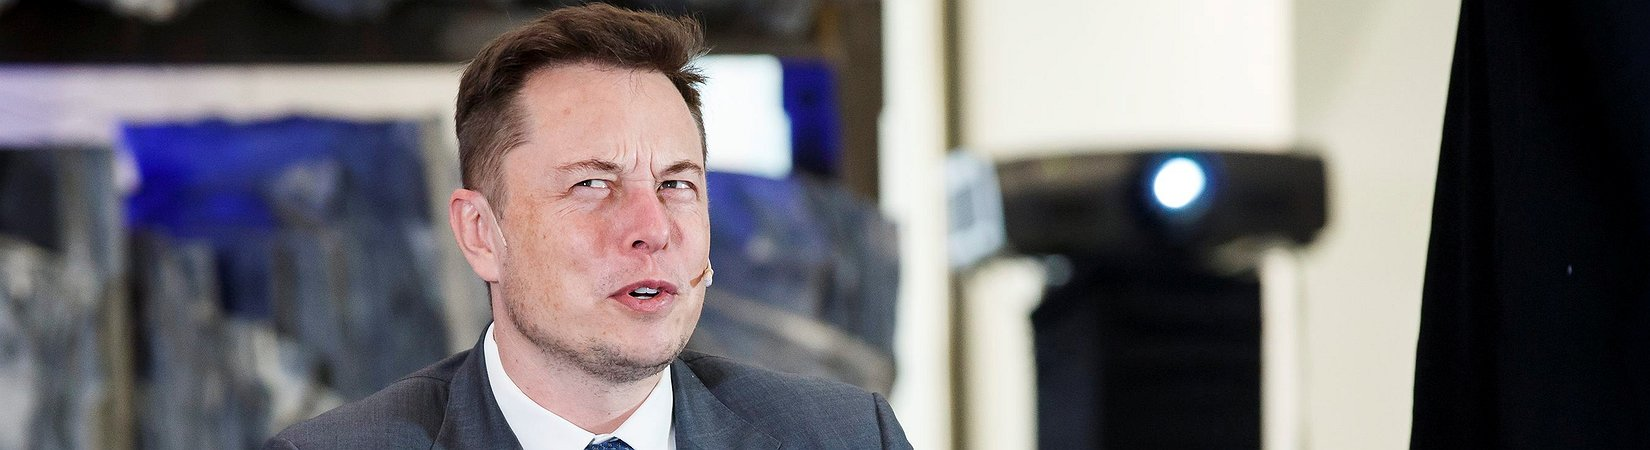 SEC criticized Tesla for 'tailoring' its earnings results